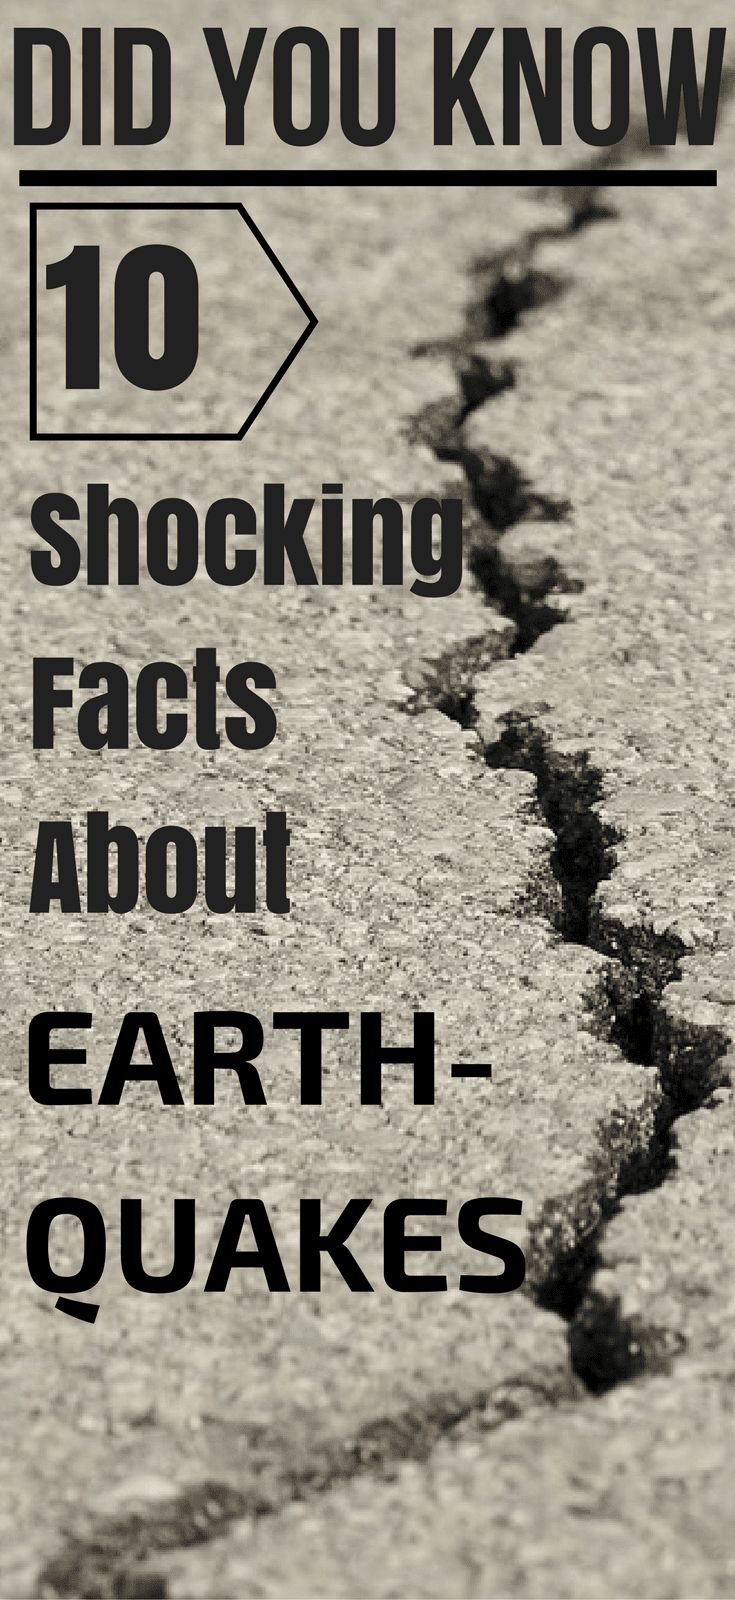 Did You Know These 10 Shocking Facts About Earthquakes? #fact